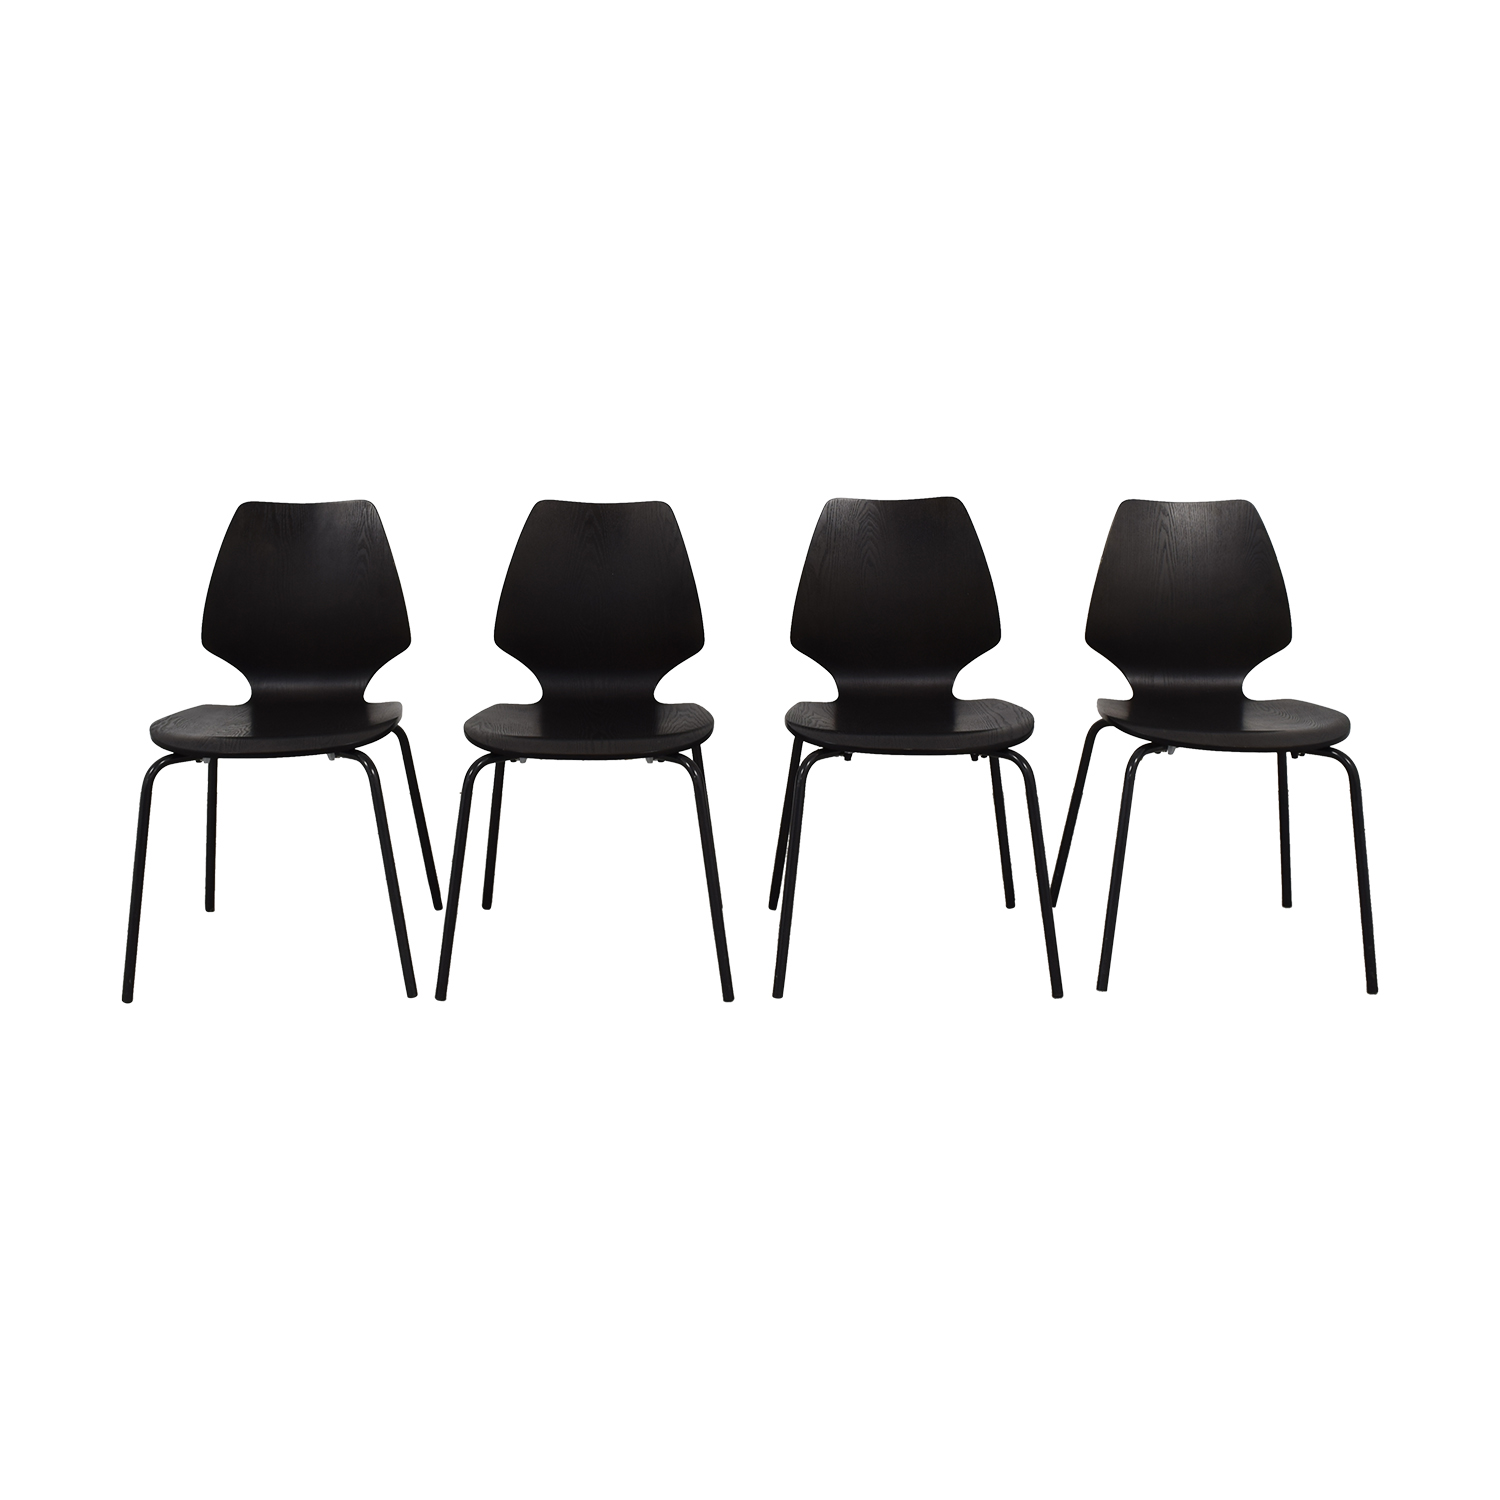 West Elm West Elm Peppermill Charcoal Dining Chairs second hand